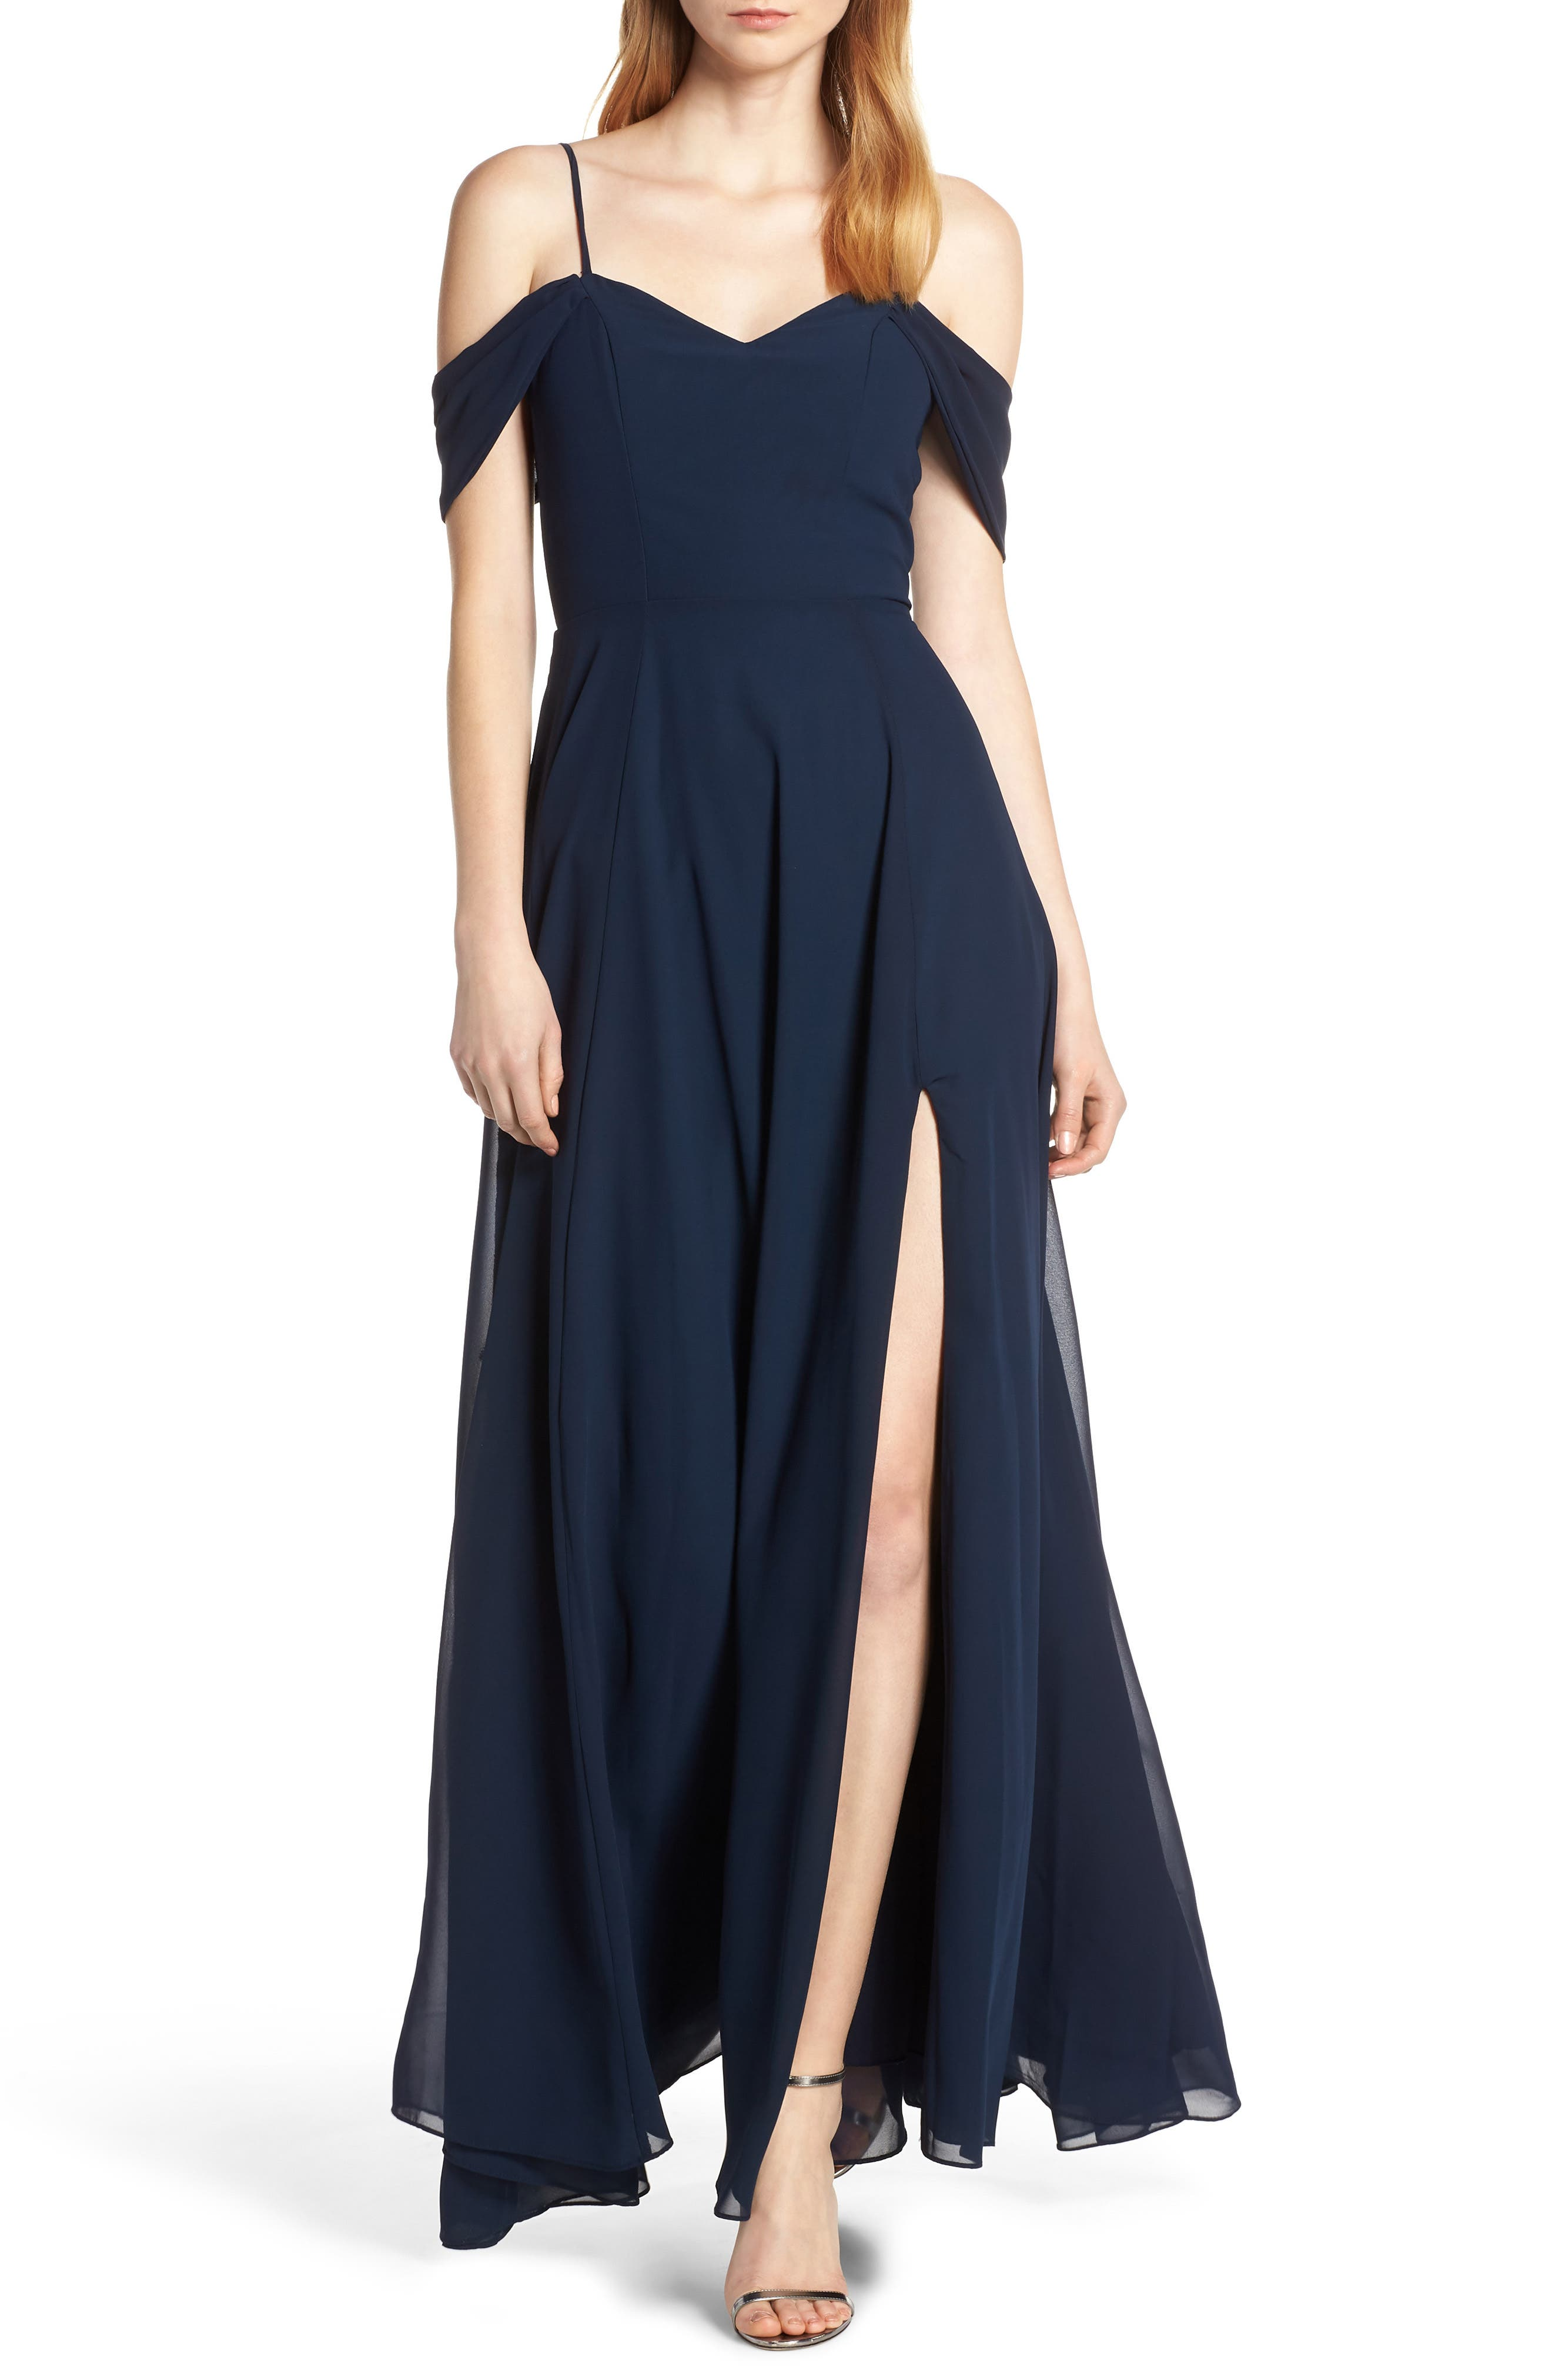 Sequin Hearts Cold Shoulder Lace-Up Back Evening Dress, Blue